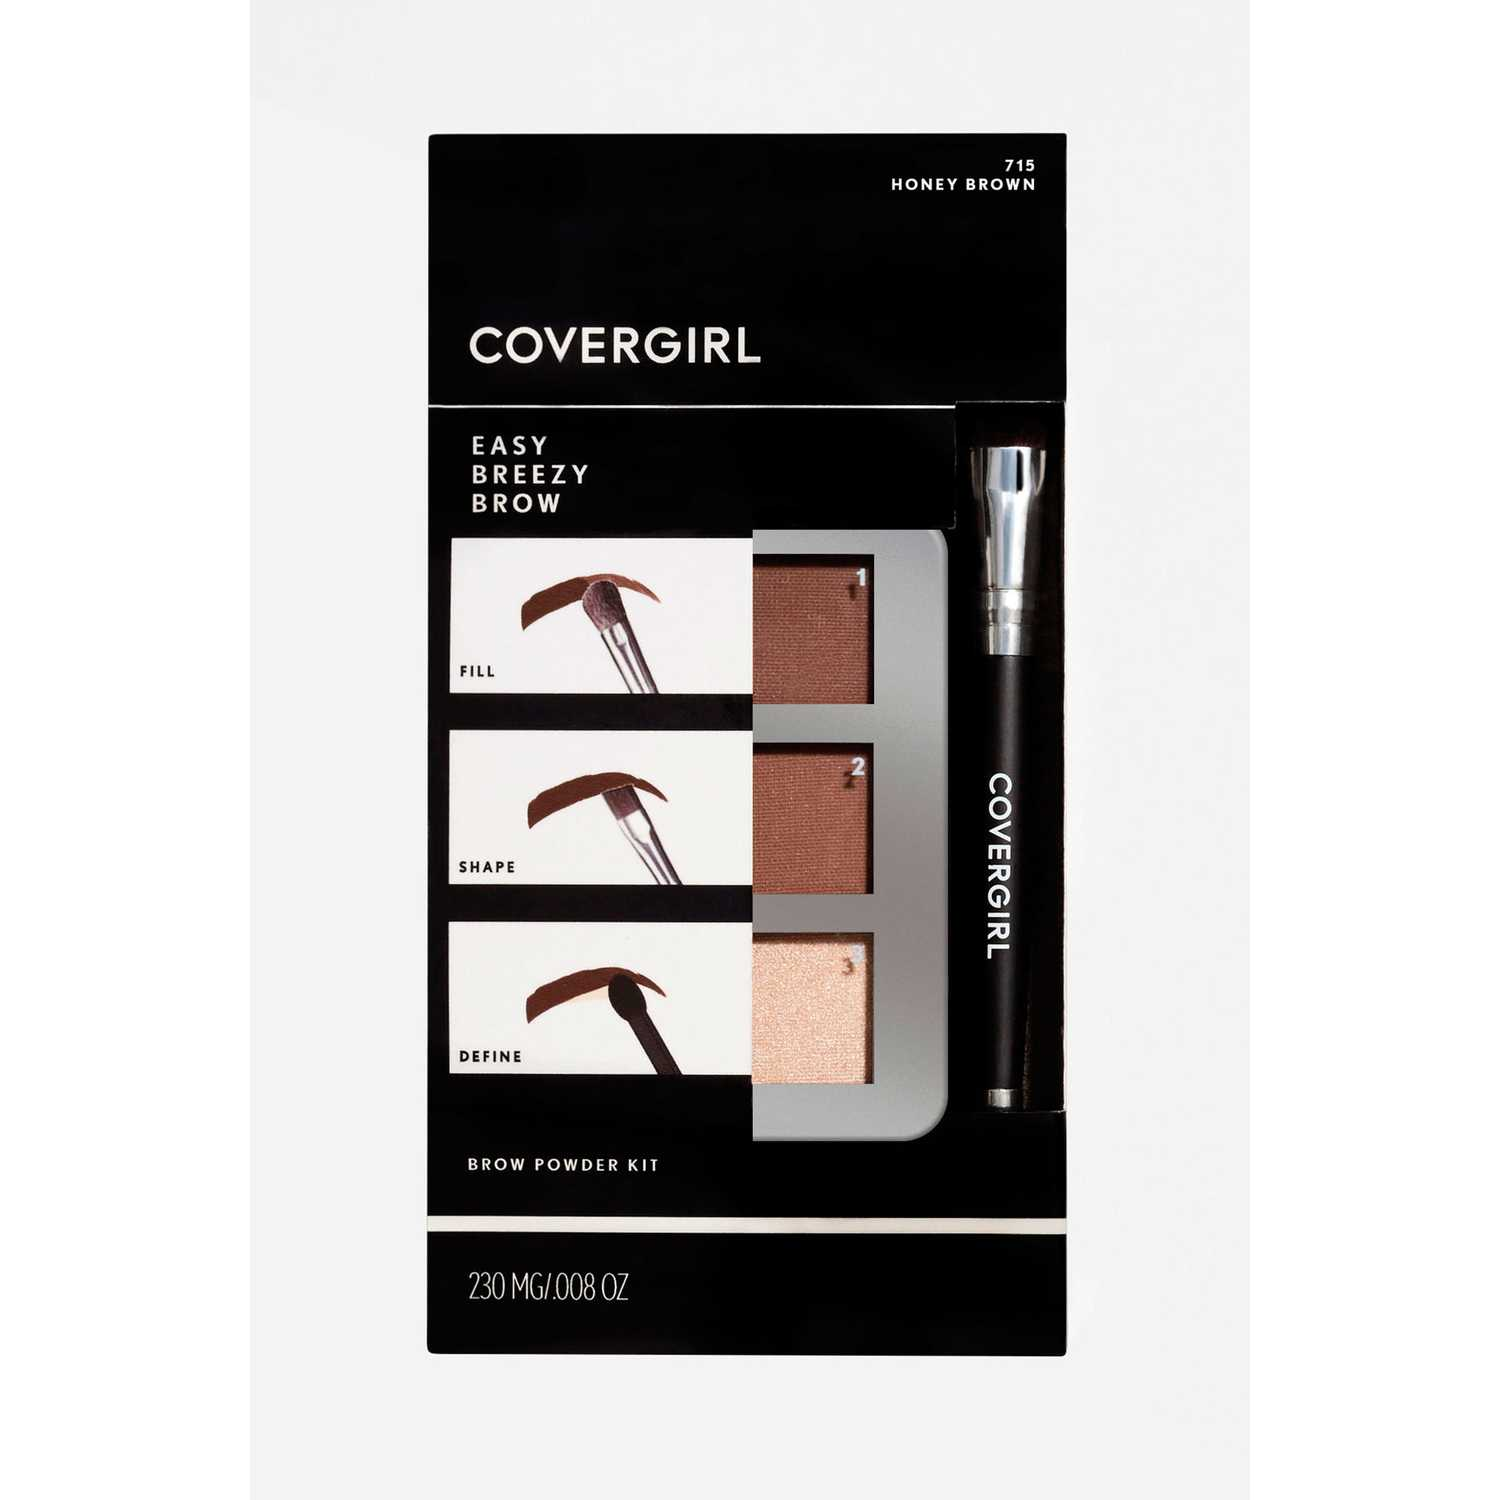 Paleta de sombras  Covergirl Honey Brown 715 brow brow kit